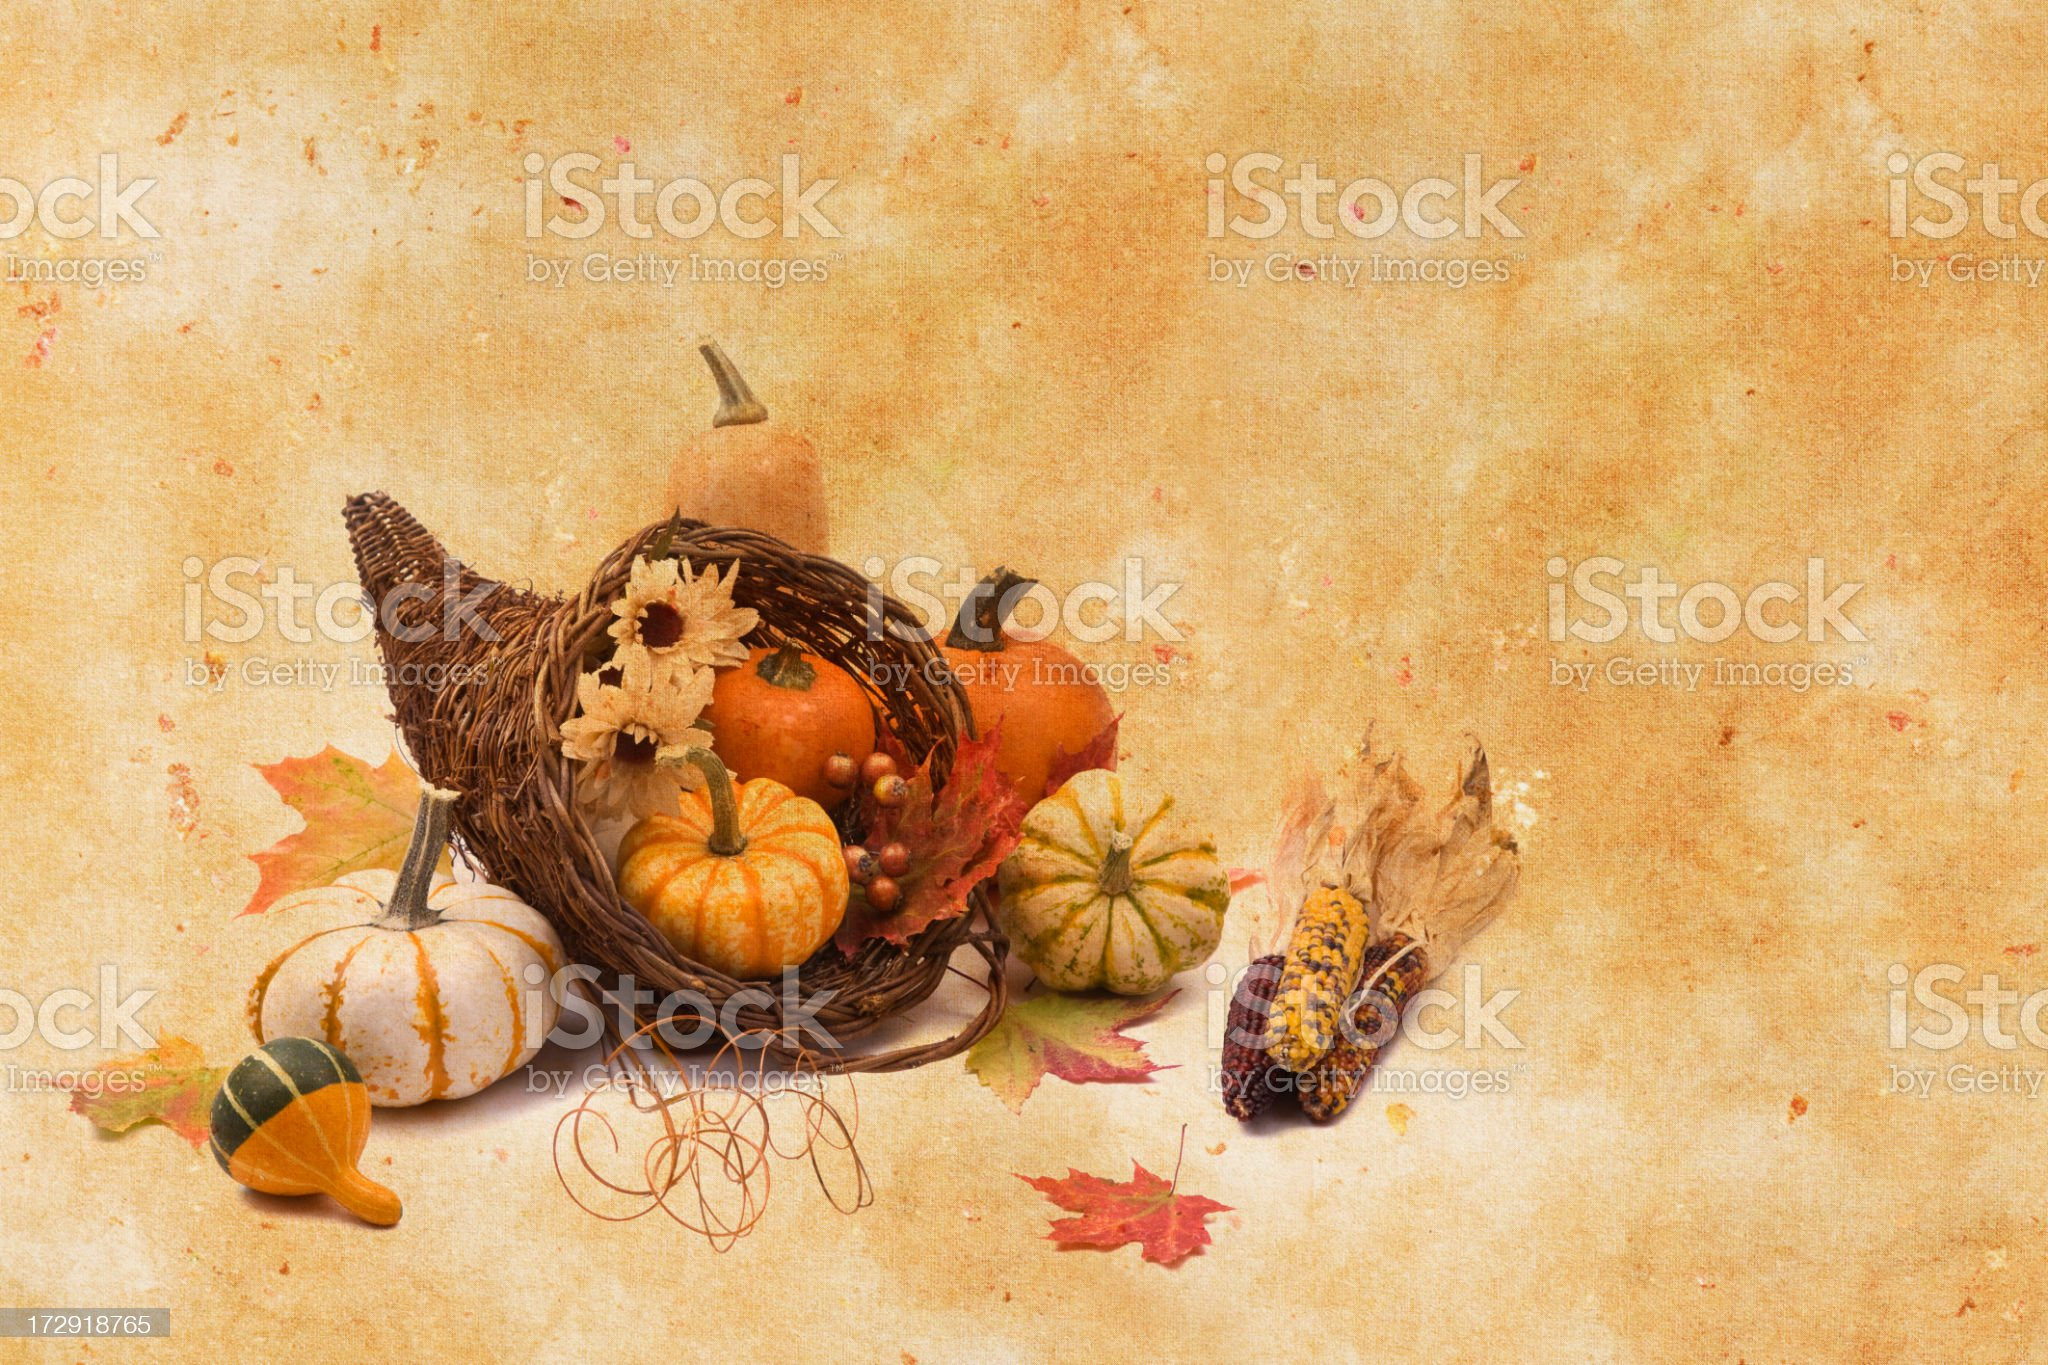 Cornucopia on Texture Background royalty-free stock photo